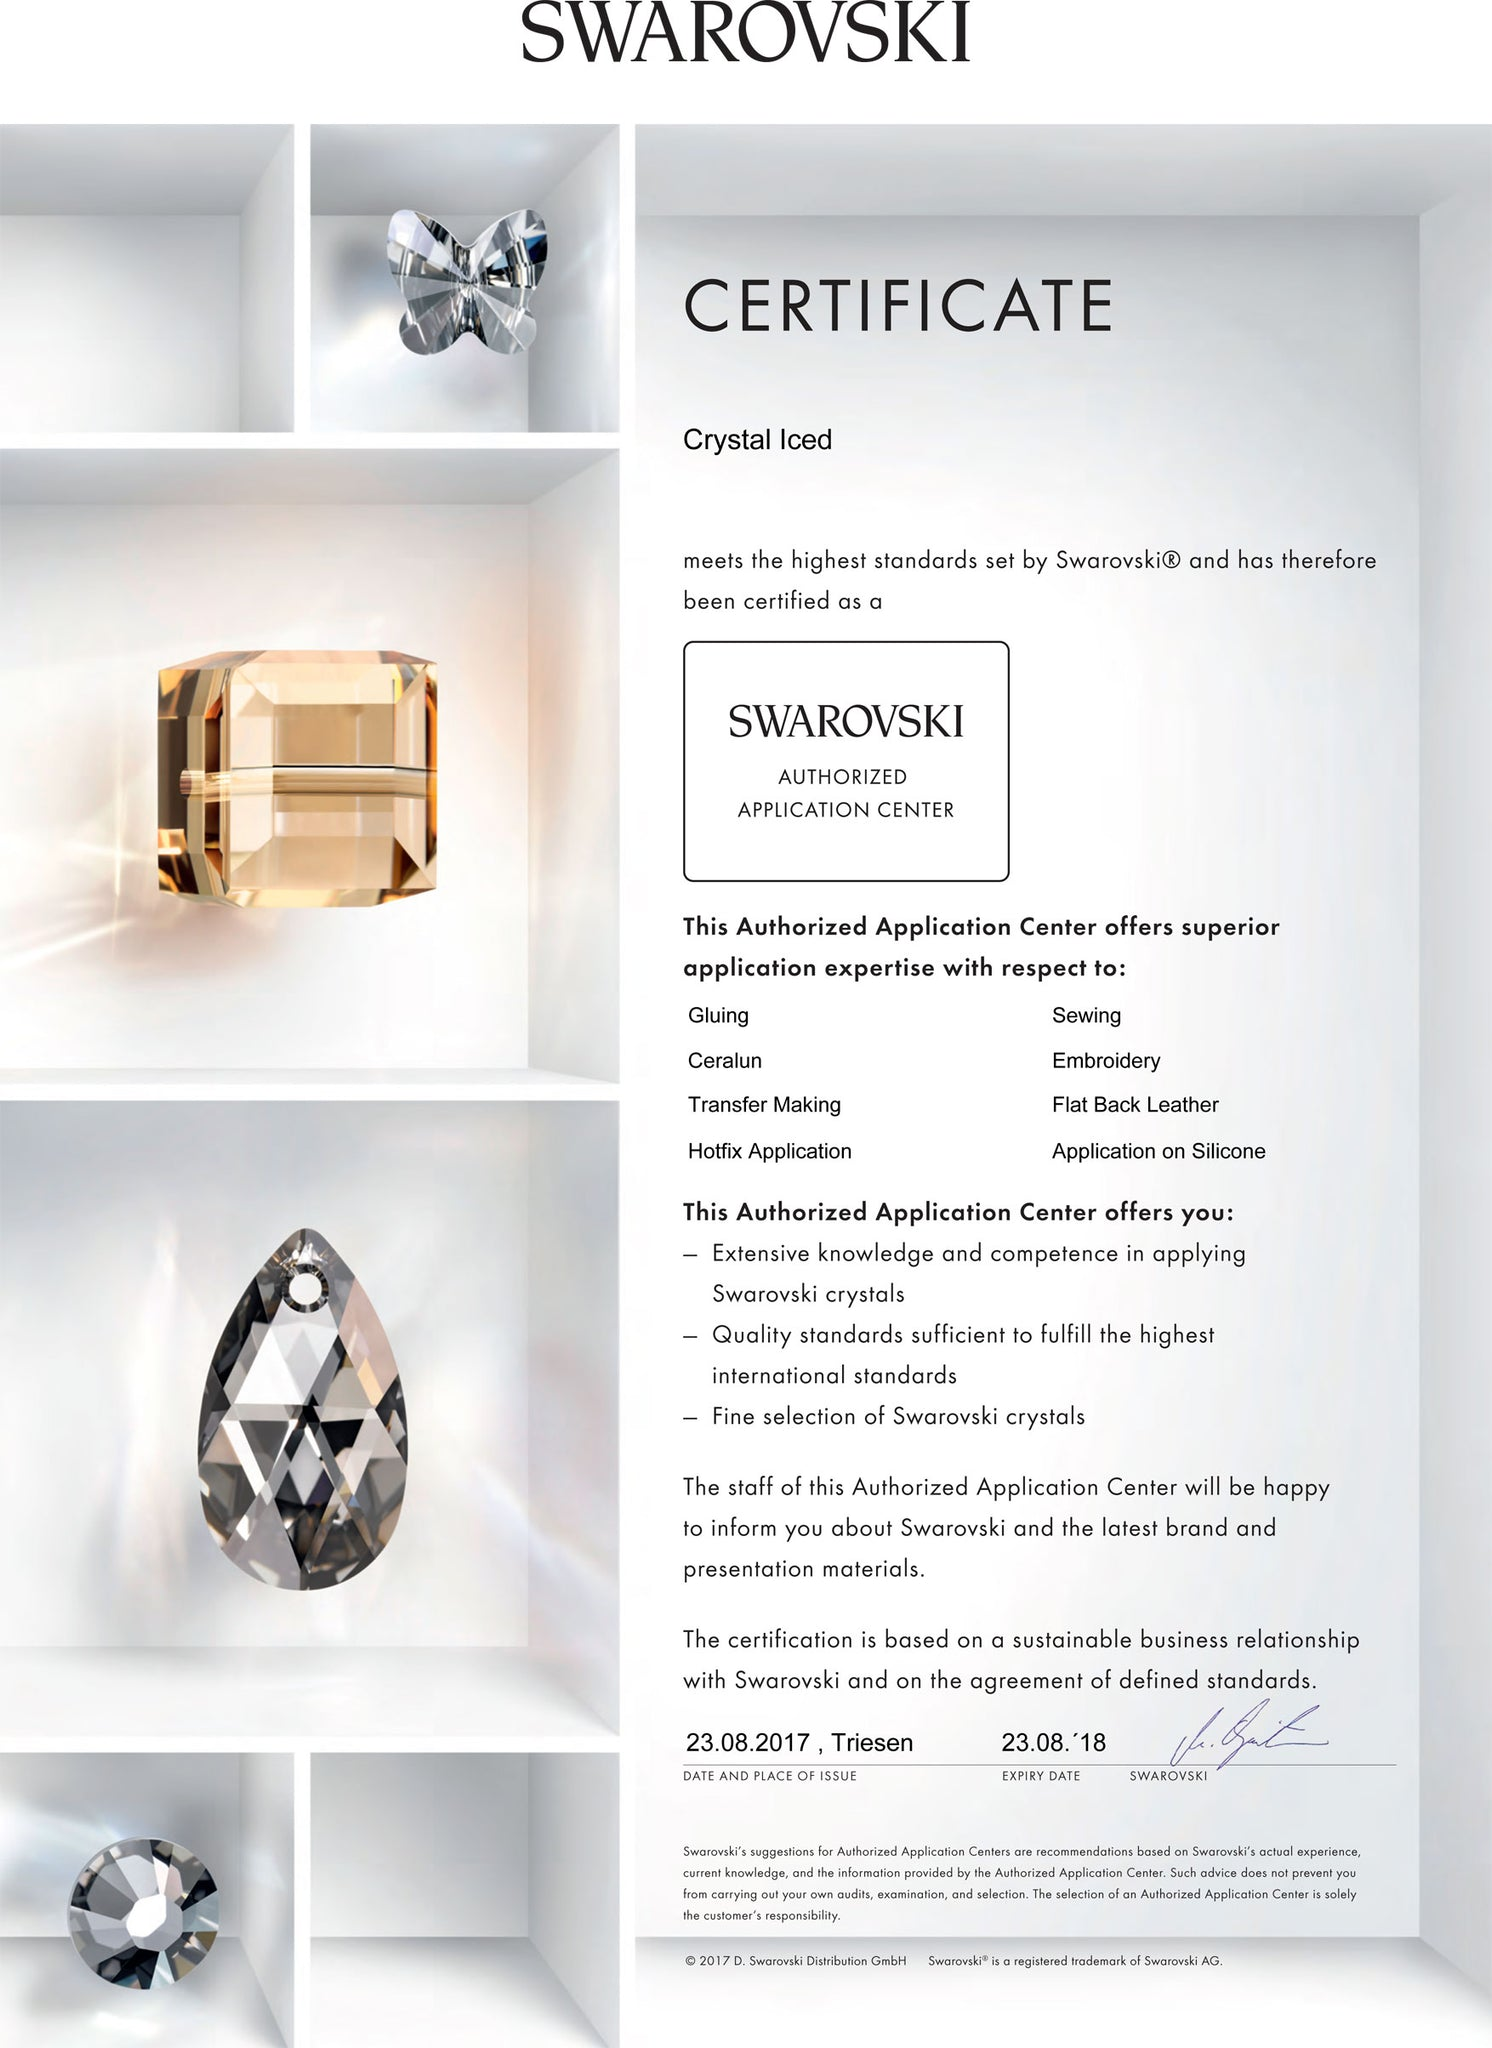 Swarovski Application Centre Certificate